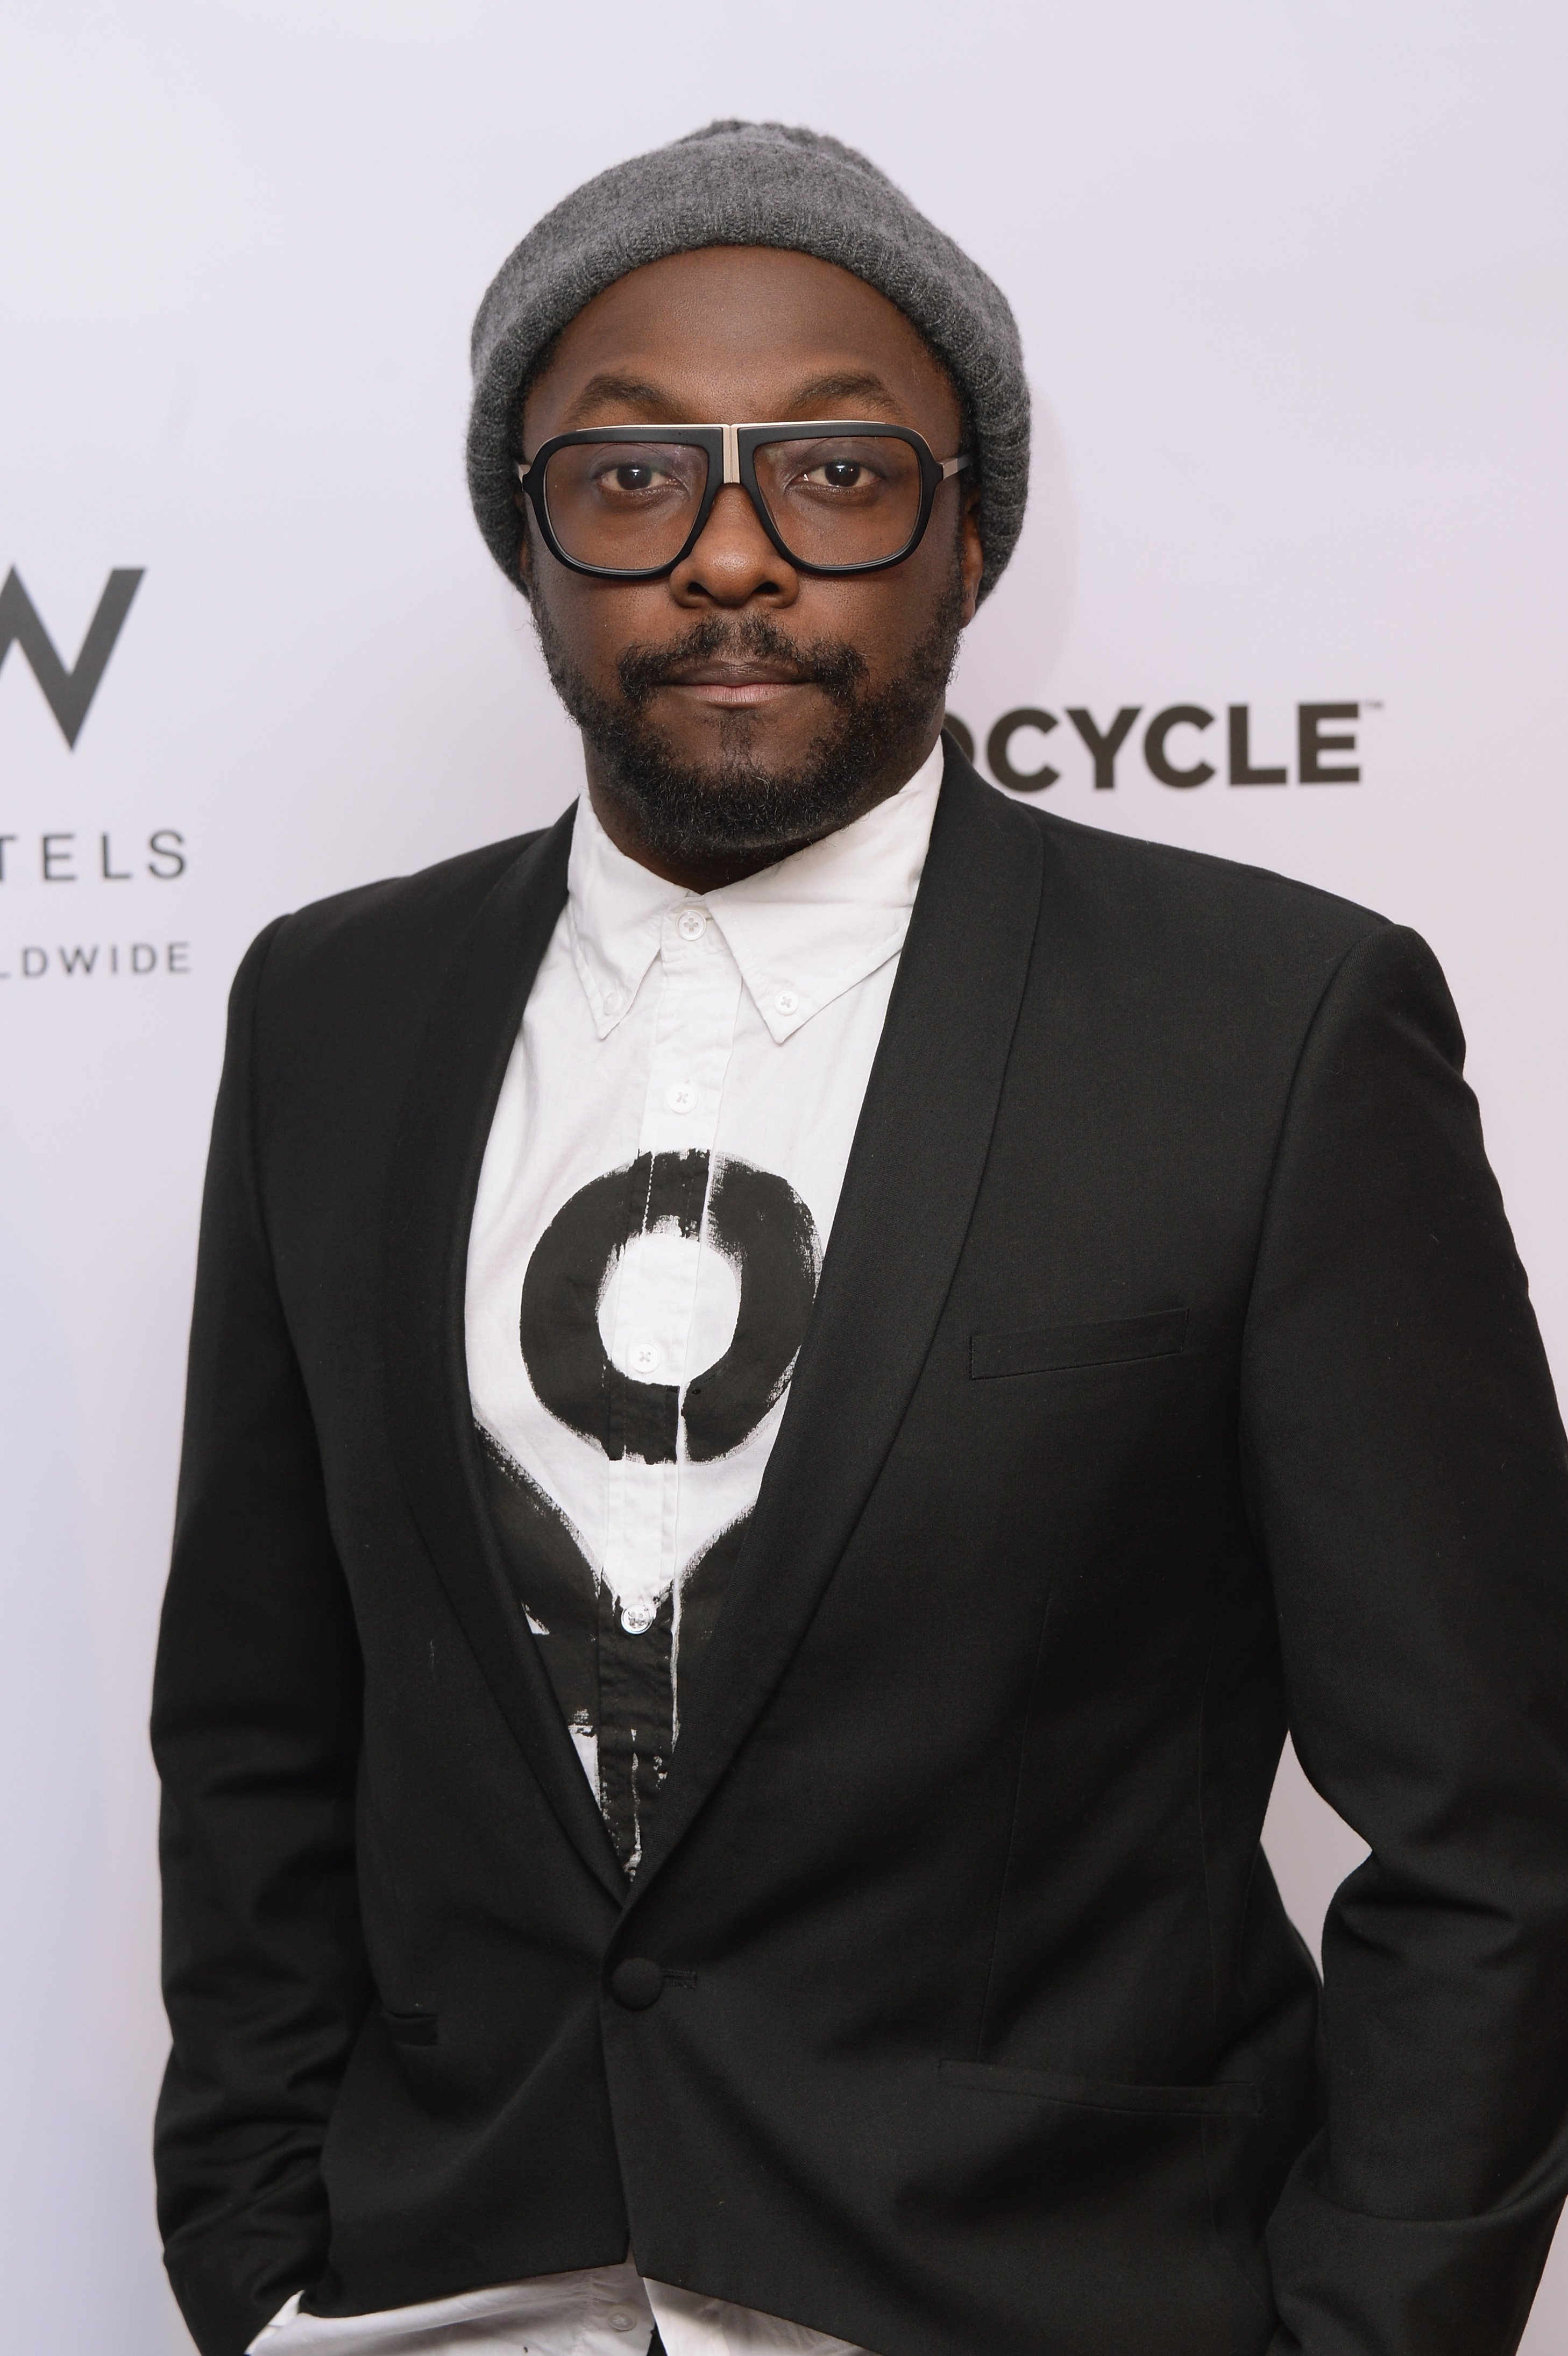 Will.i.am at W New York Launch Event on April 13, 2015 in New York City | Photo: Getty Images